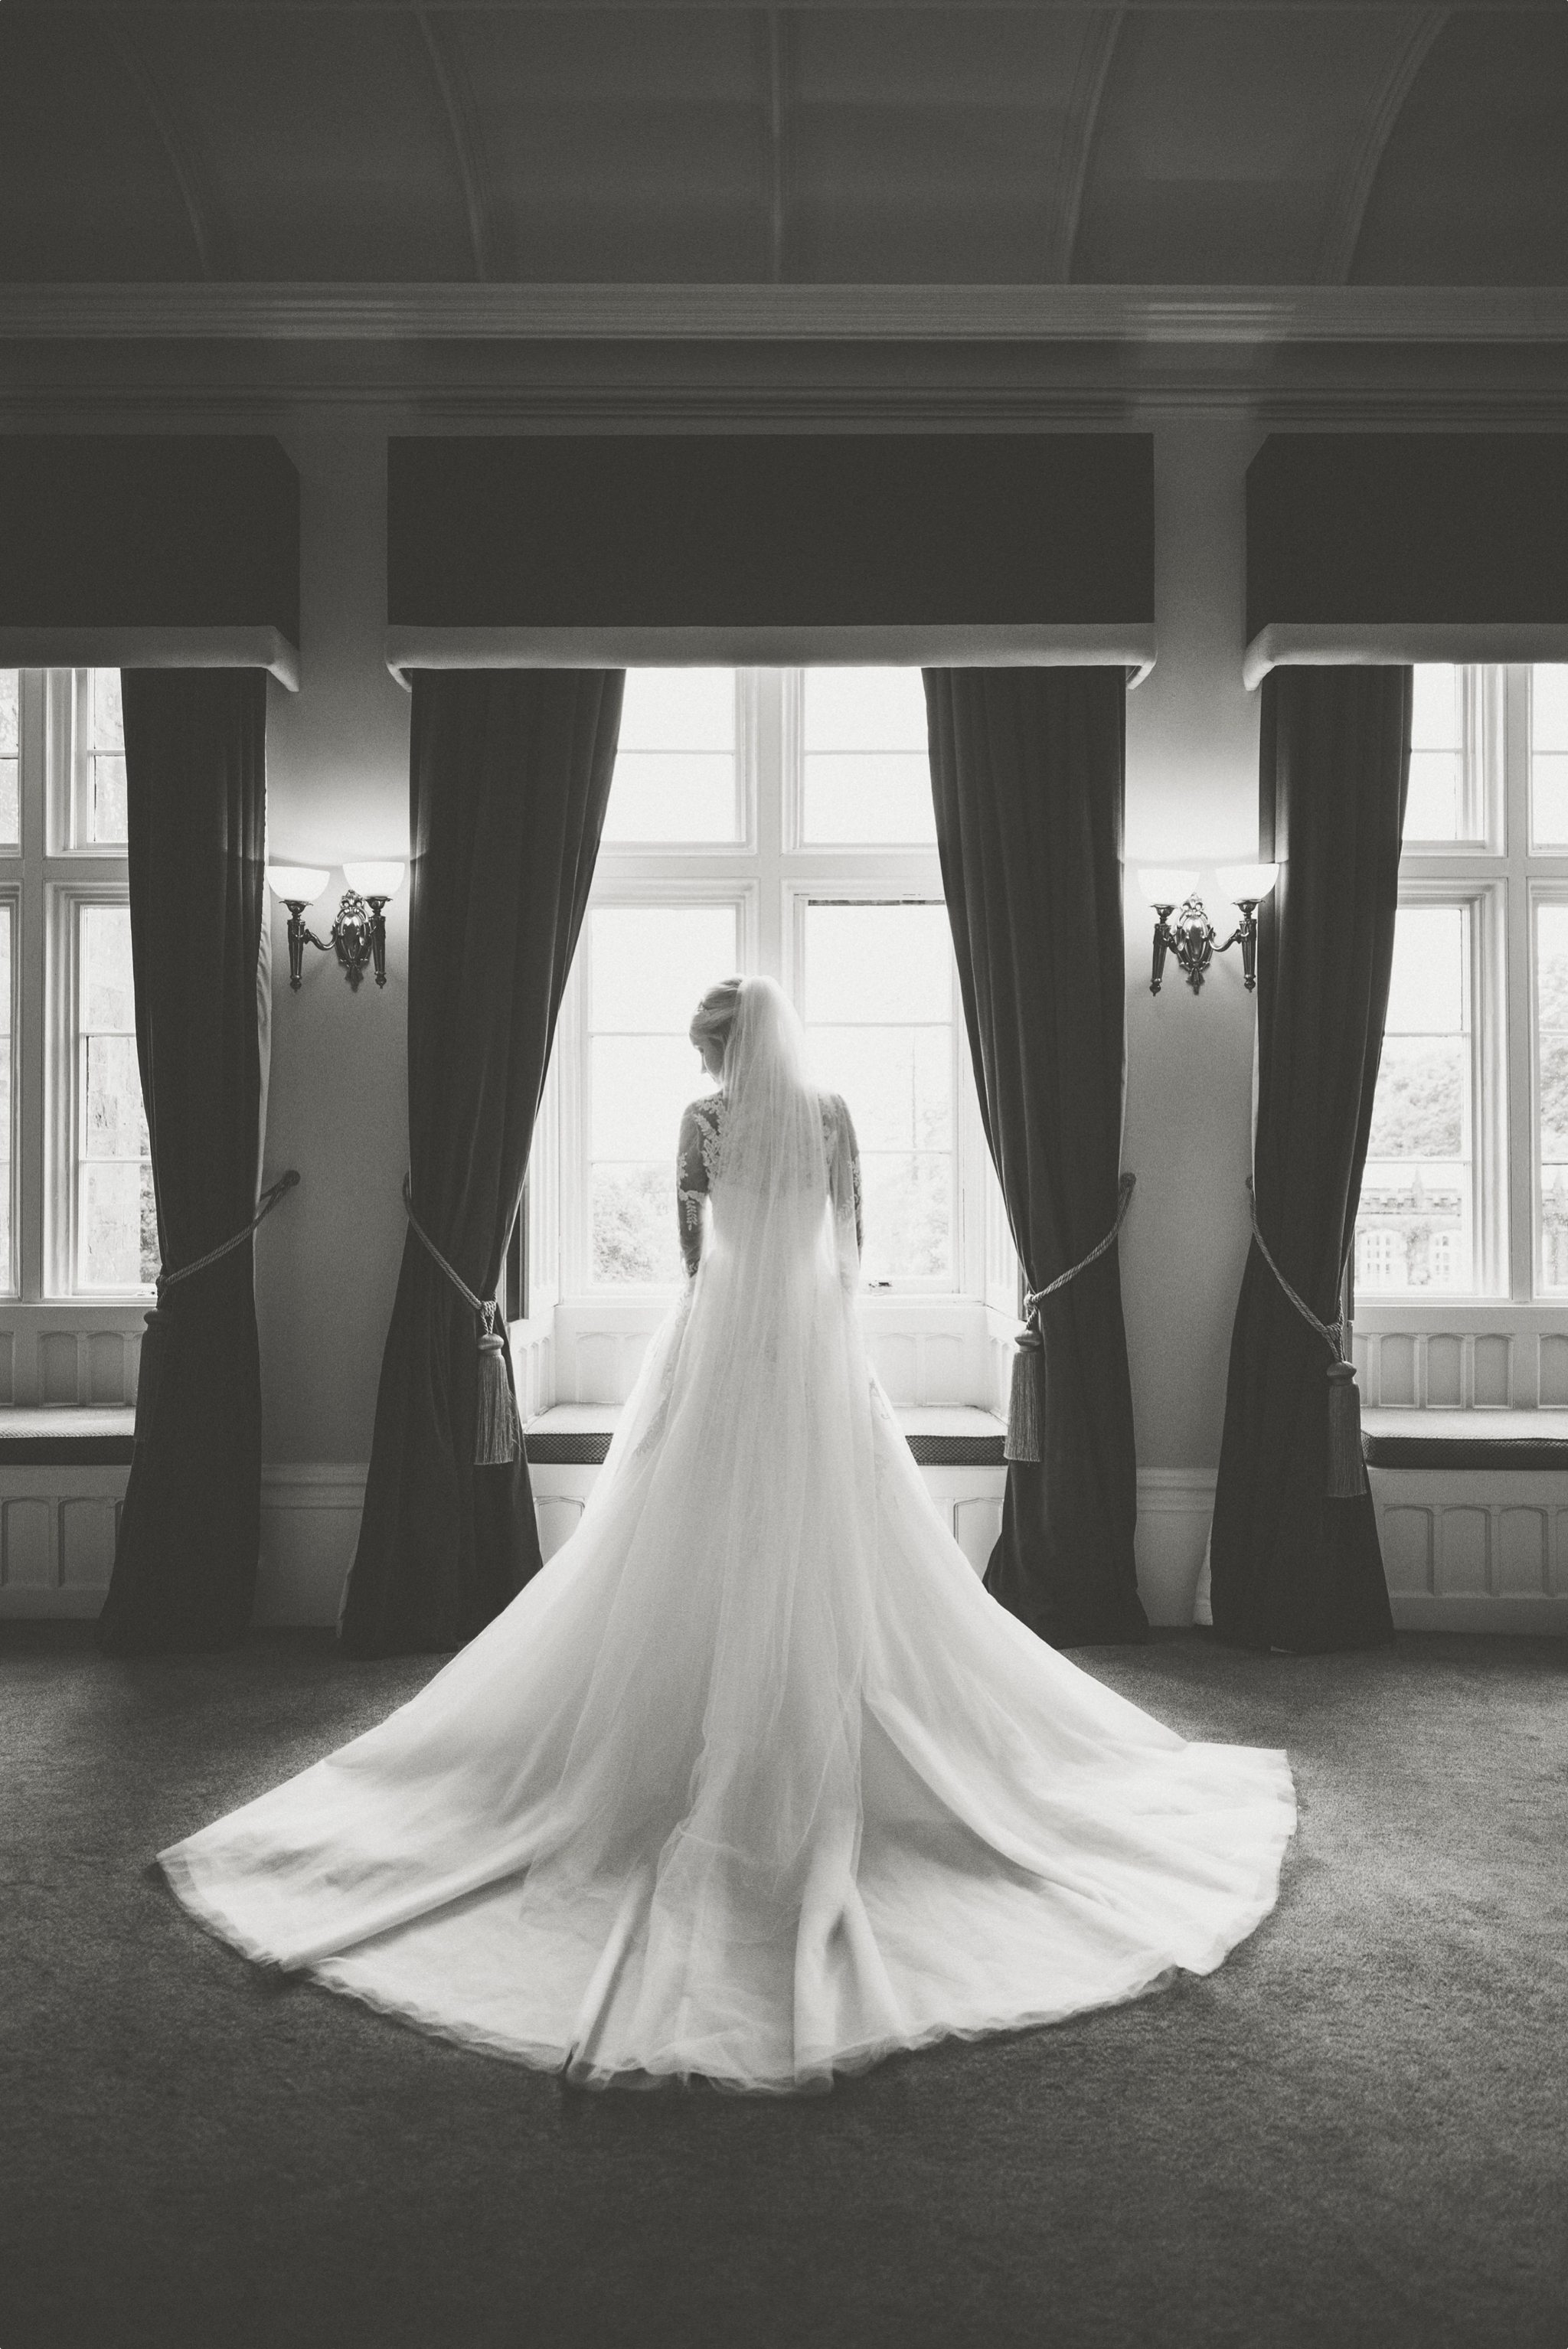 Bride standing in the window at her St Audries Park Sophisticated Rainy Wedding